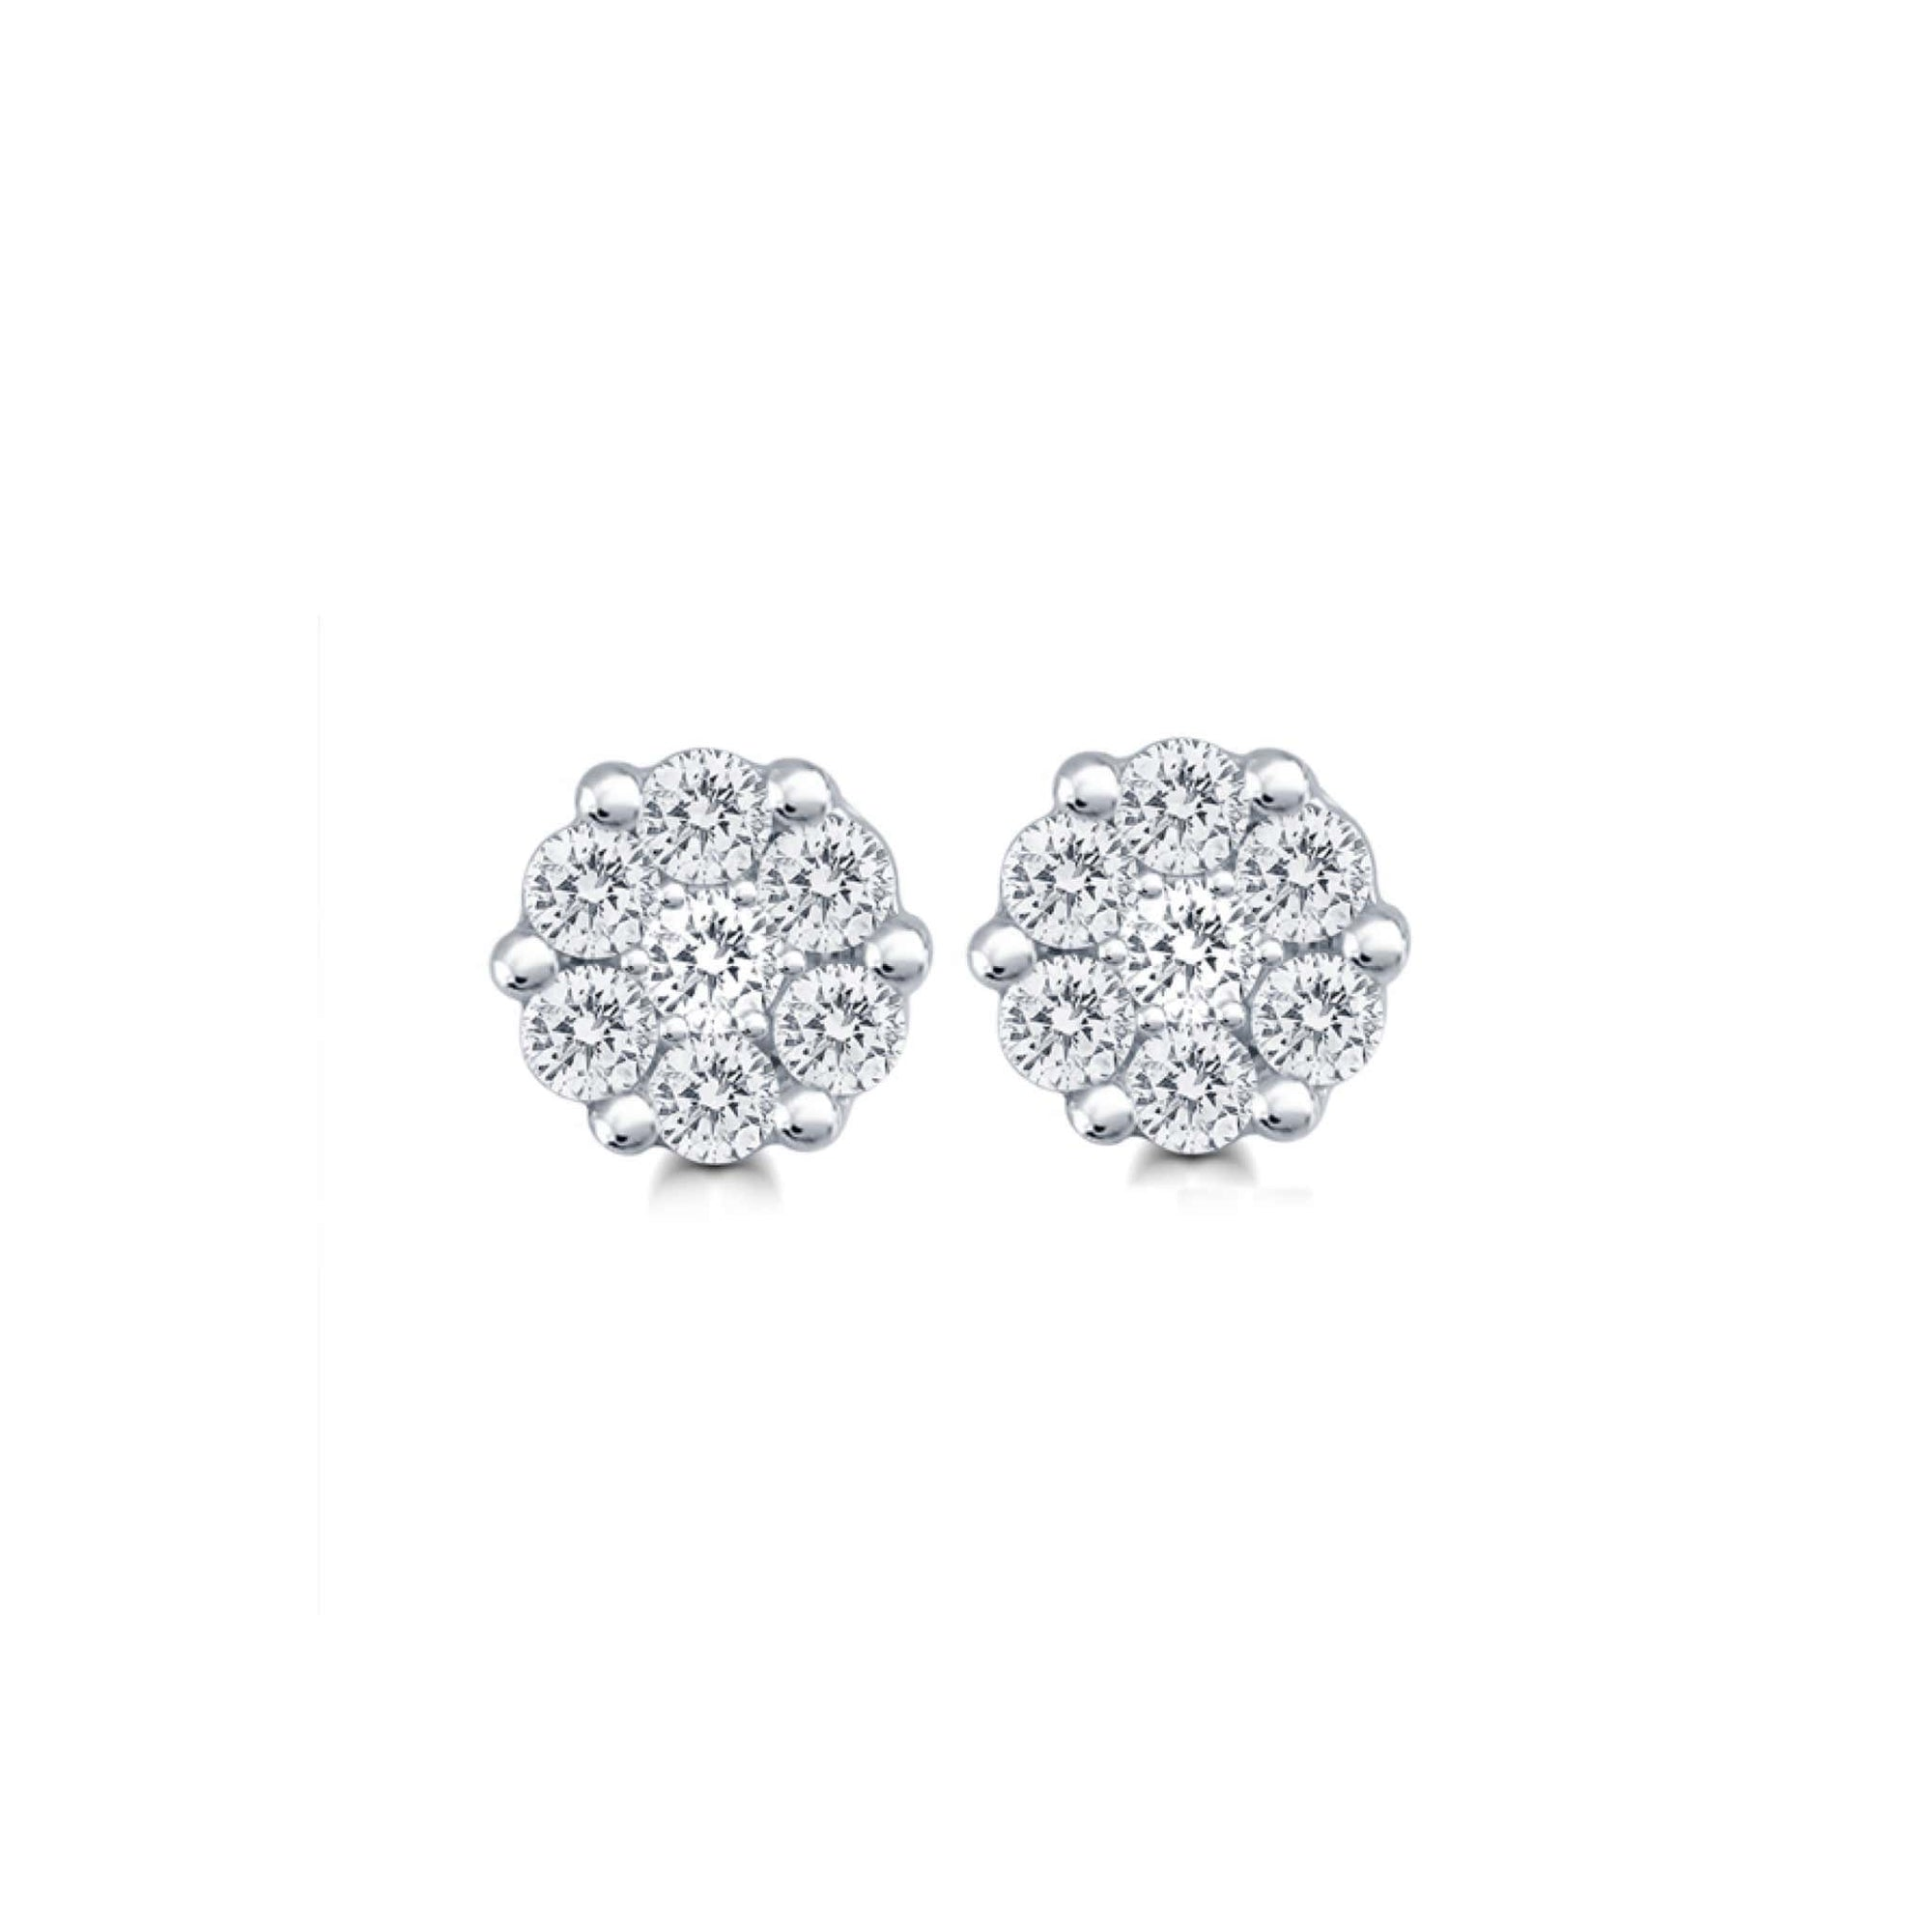 10K Diamond Flower Cluster Stud Earrings at Arman's Jewellers